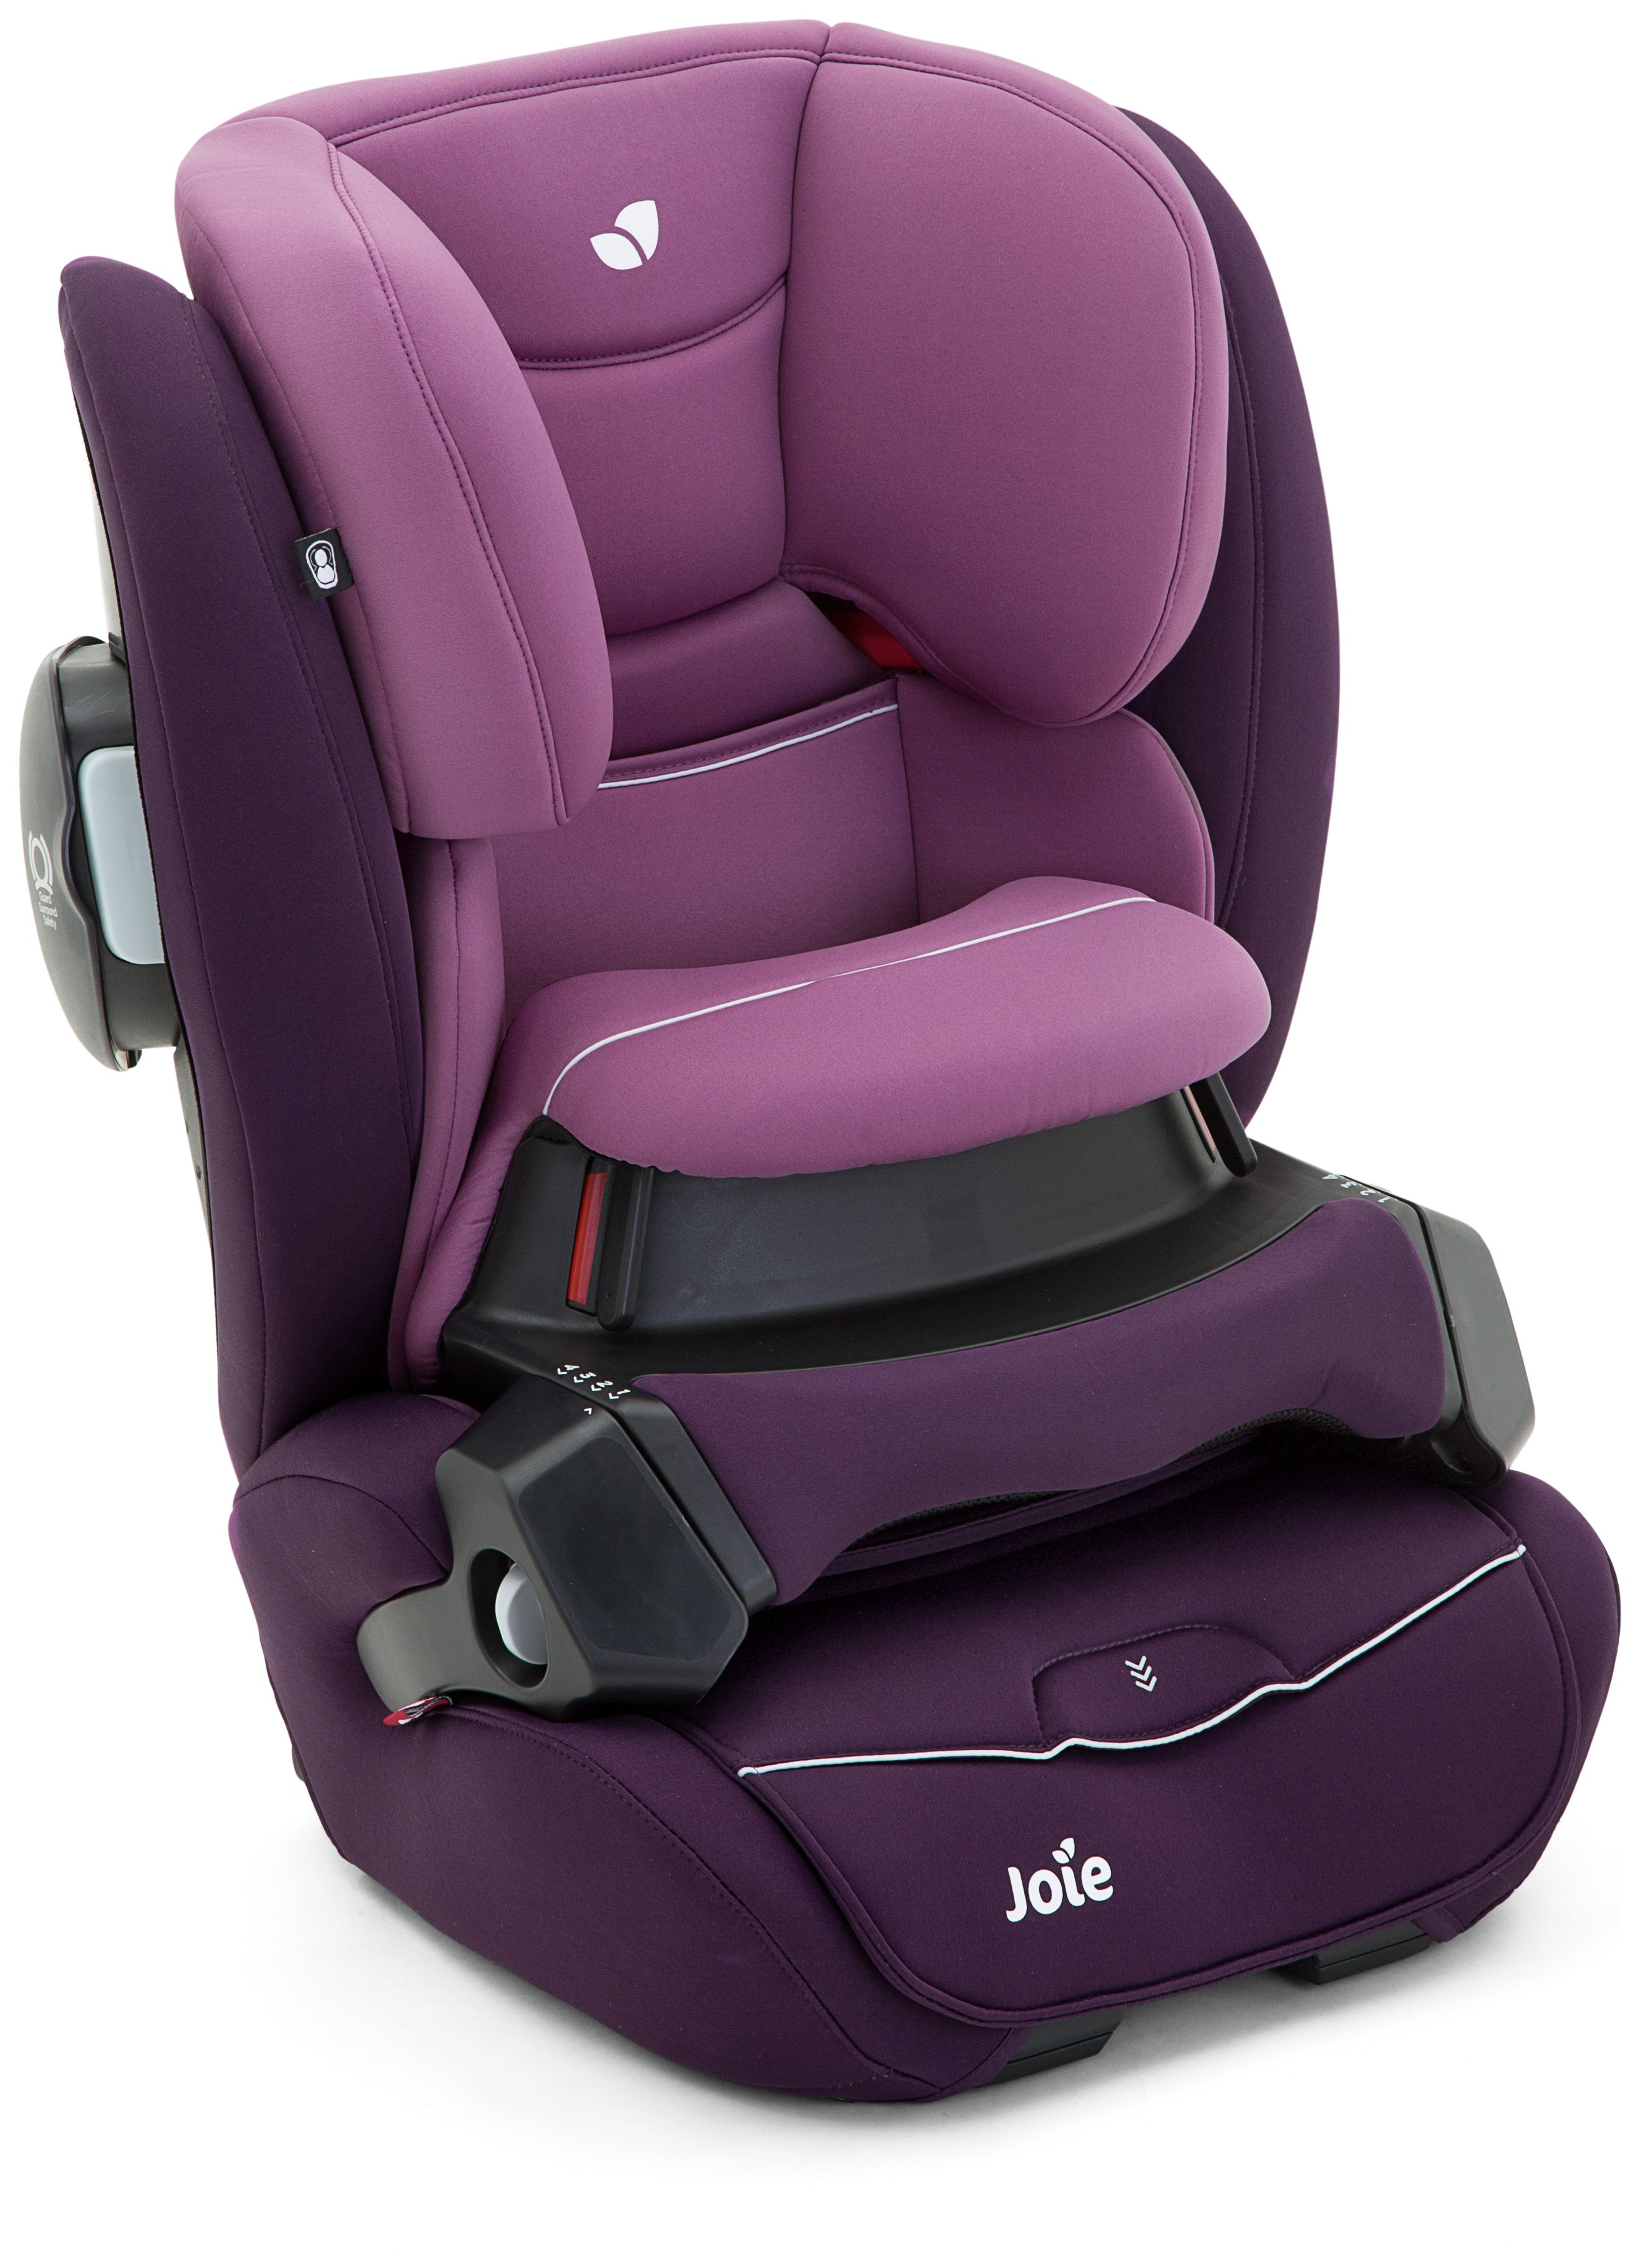 Joie Transcend Group 1/2/3 Lilac Car Seat - Lilac